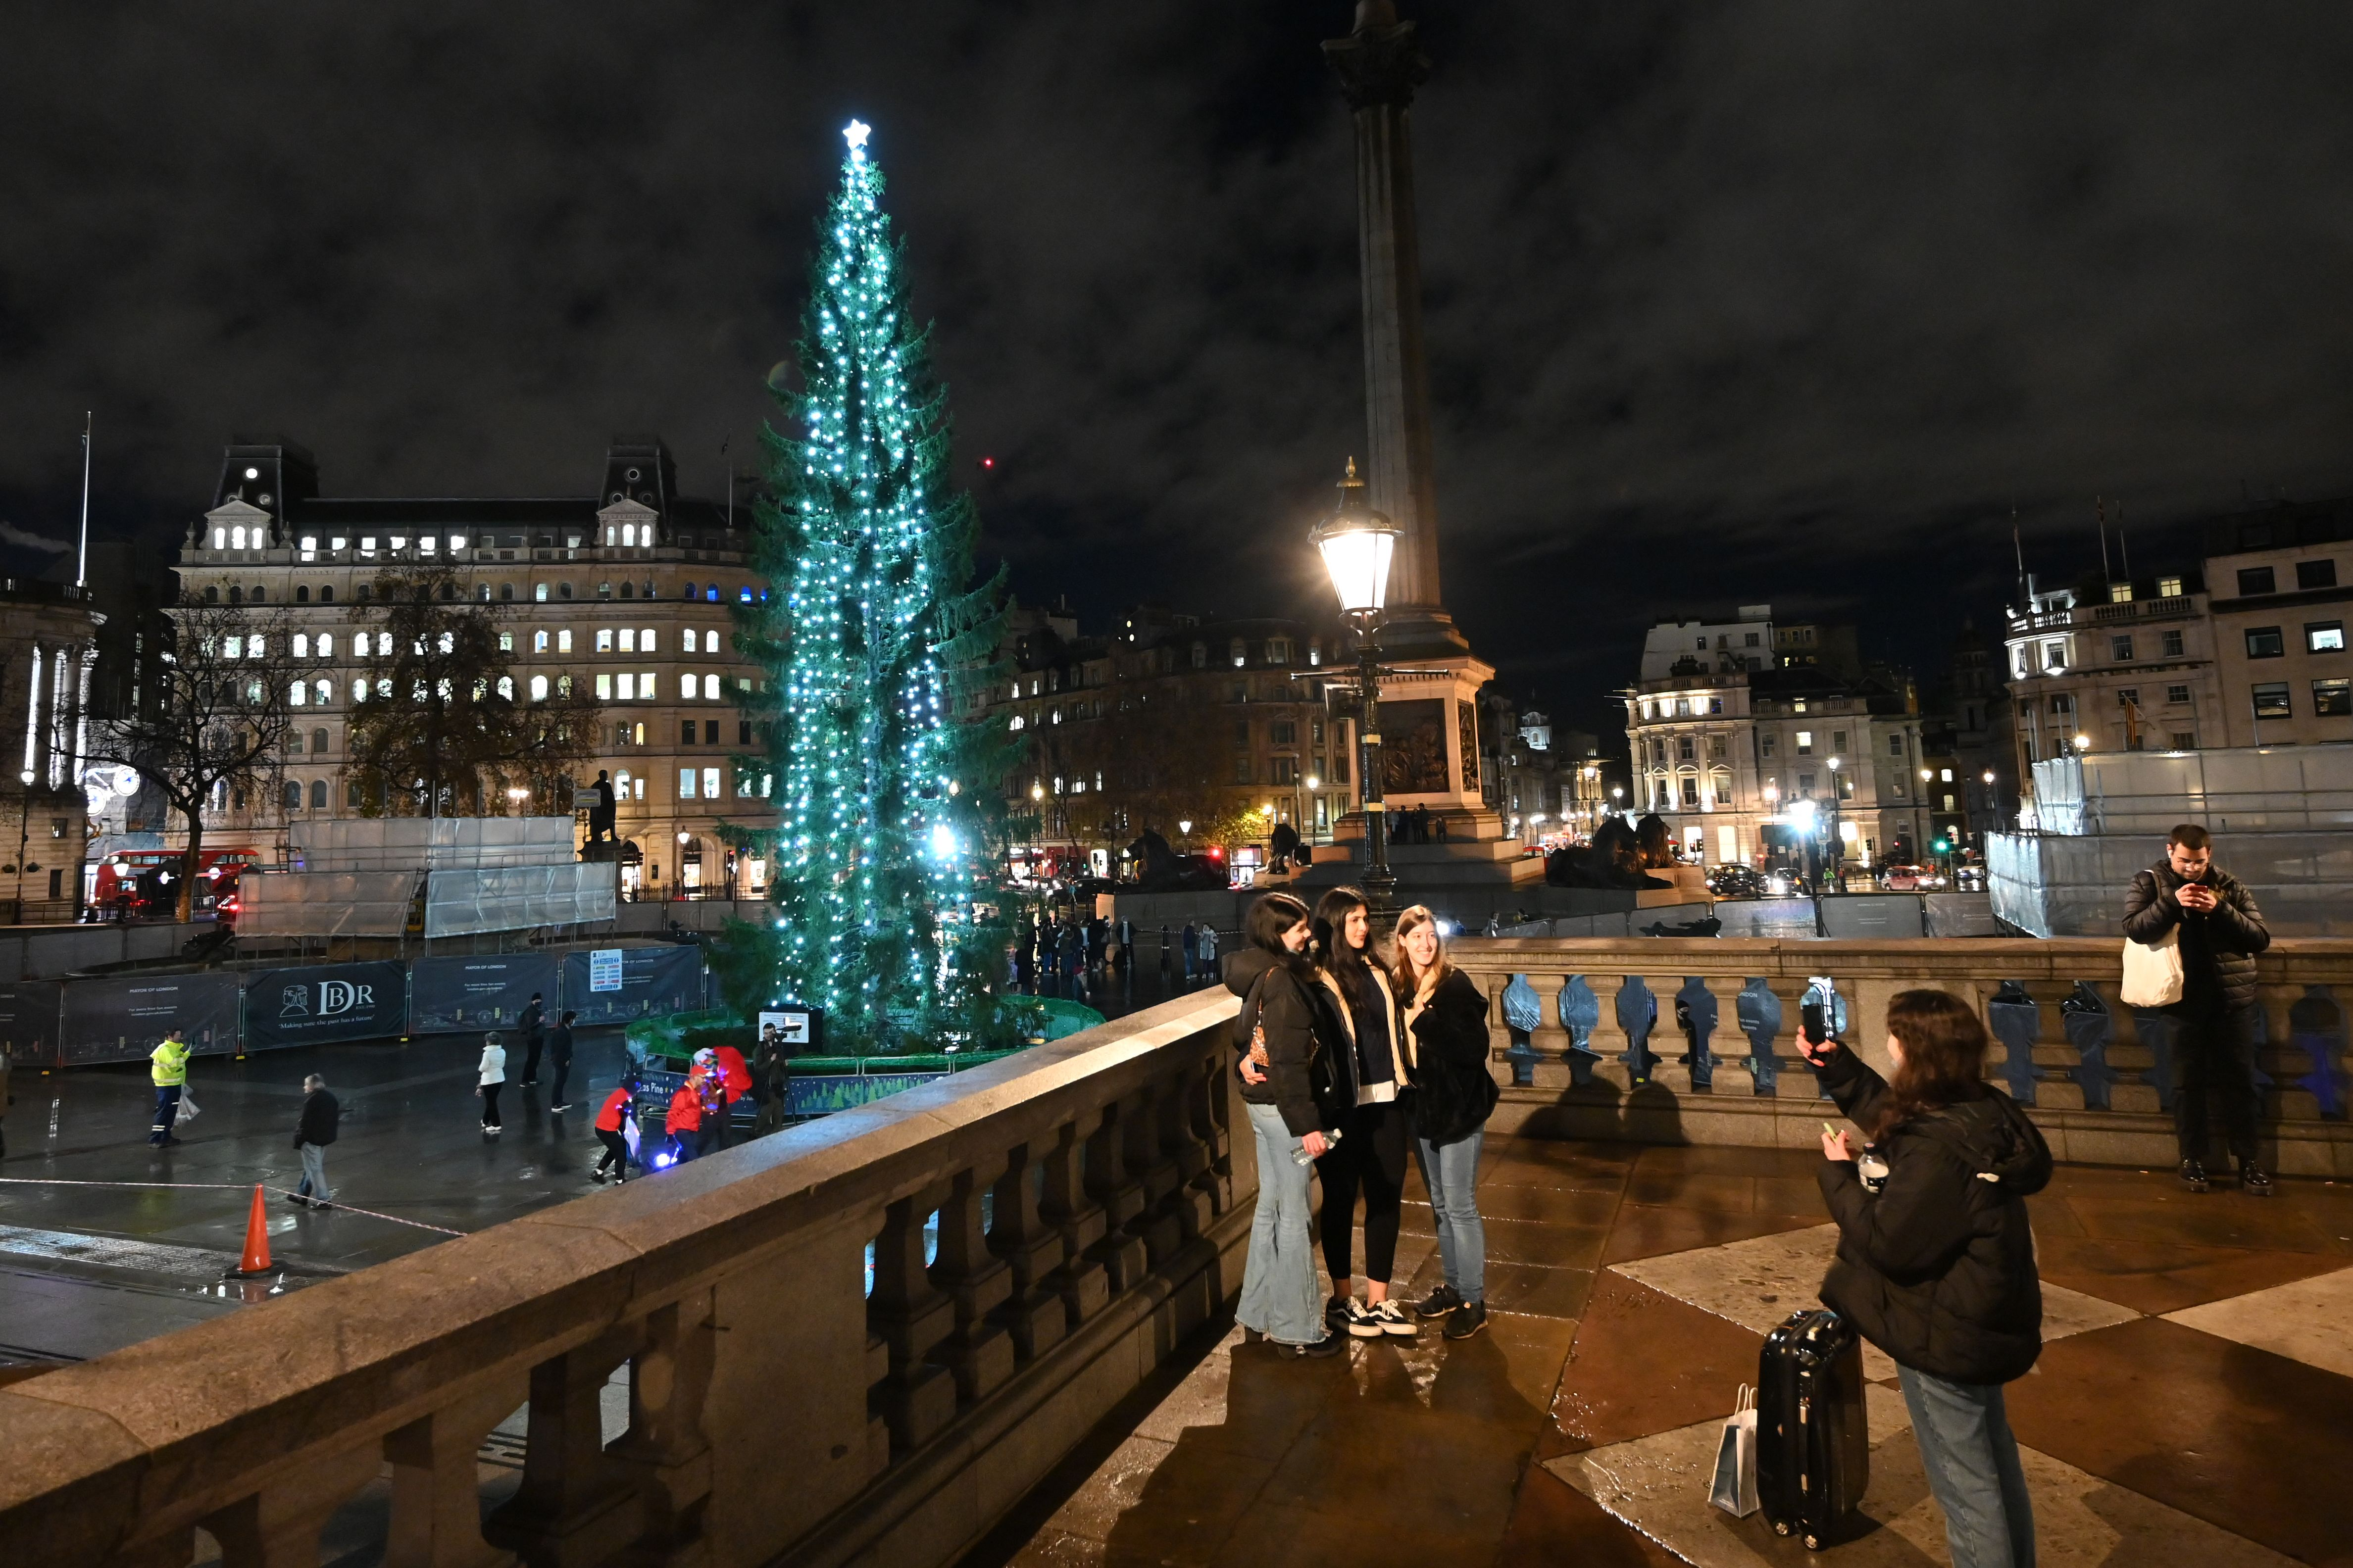 People pose for a photograph in front of the illuminated Christmas tree in Trafalgar Square in central London on December 3, 2020. - The tree is an annual gift to Britain from Norway given as a symbol of friendship and co-operation between the two countries. (Photo by JUSTIN TALLIS / AFP) (Photo by JUSTIN TALLIS/AFP via Getty Images)